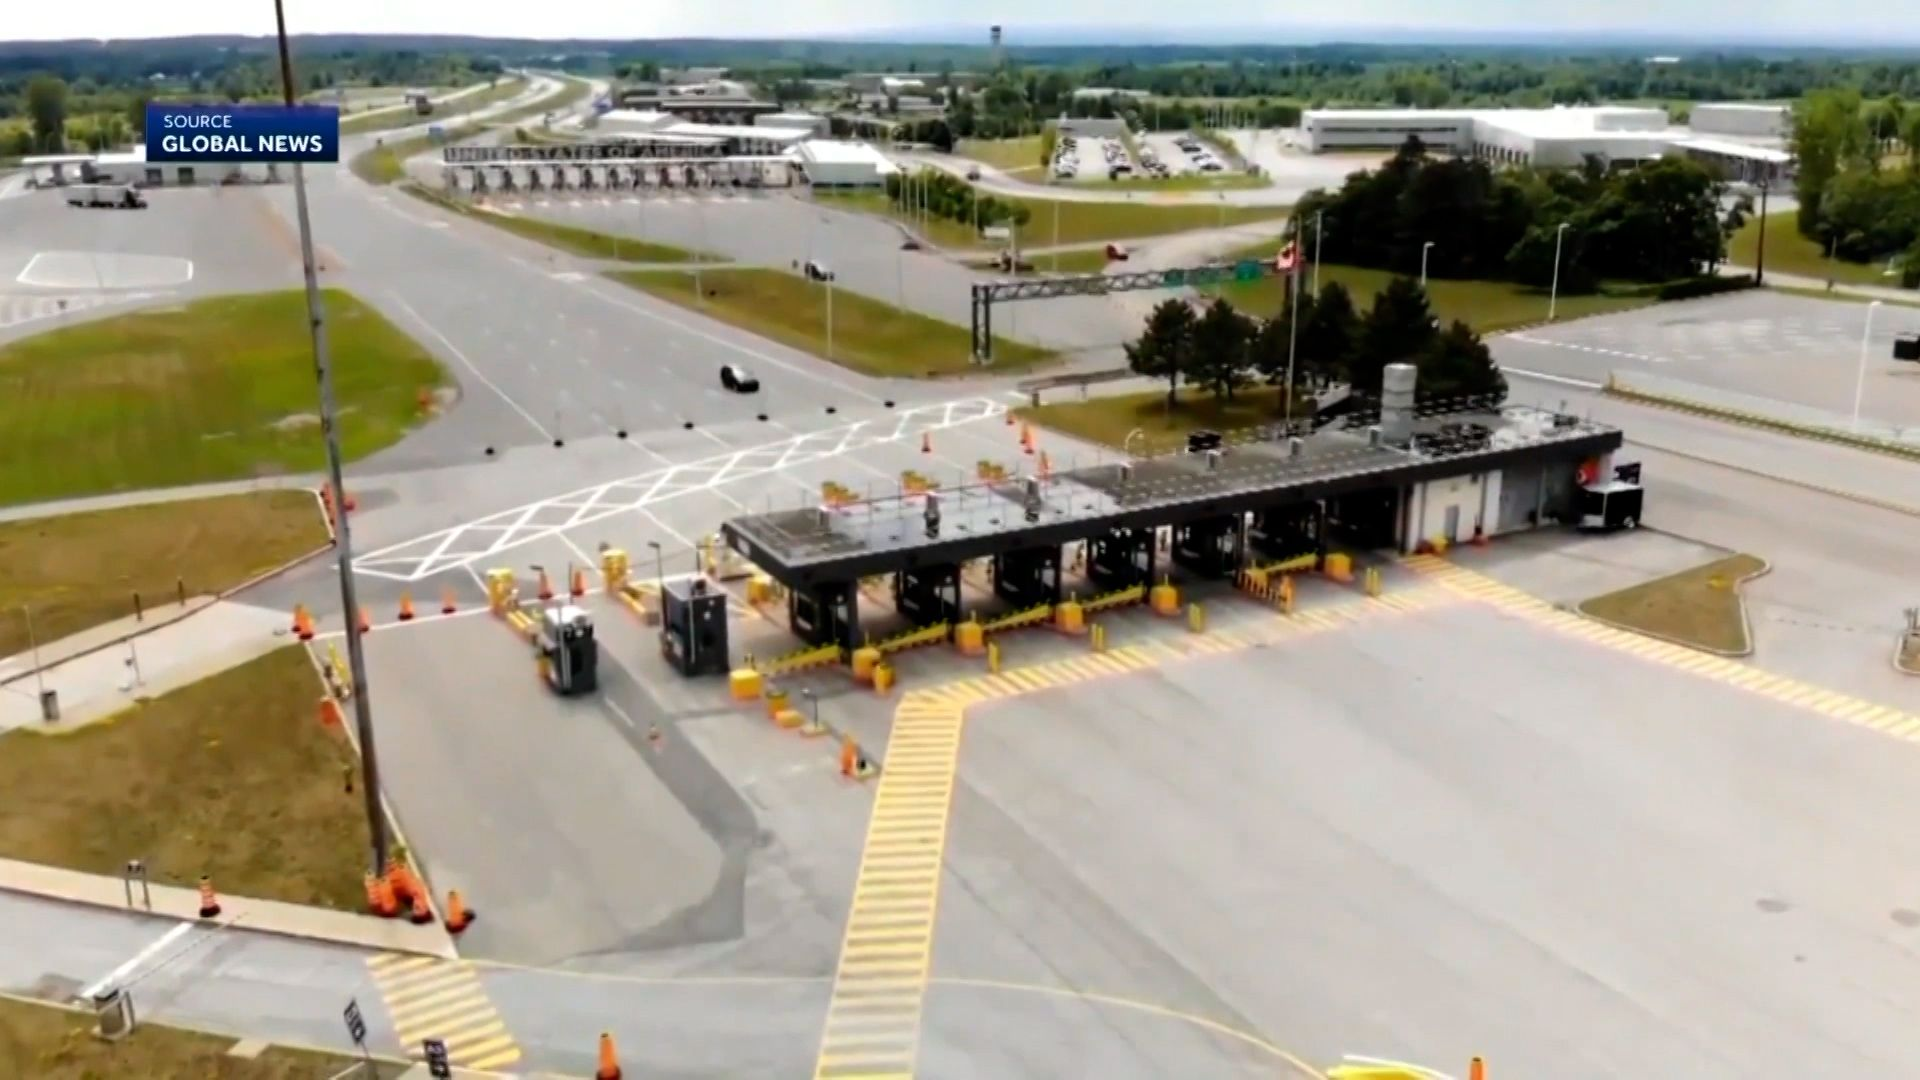 Canadian border strike could make things difficult for travelers